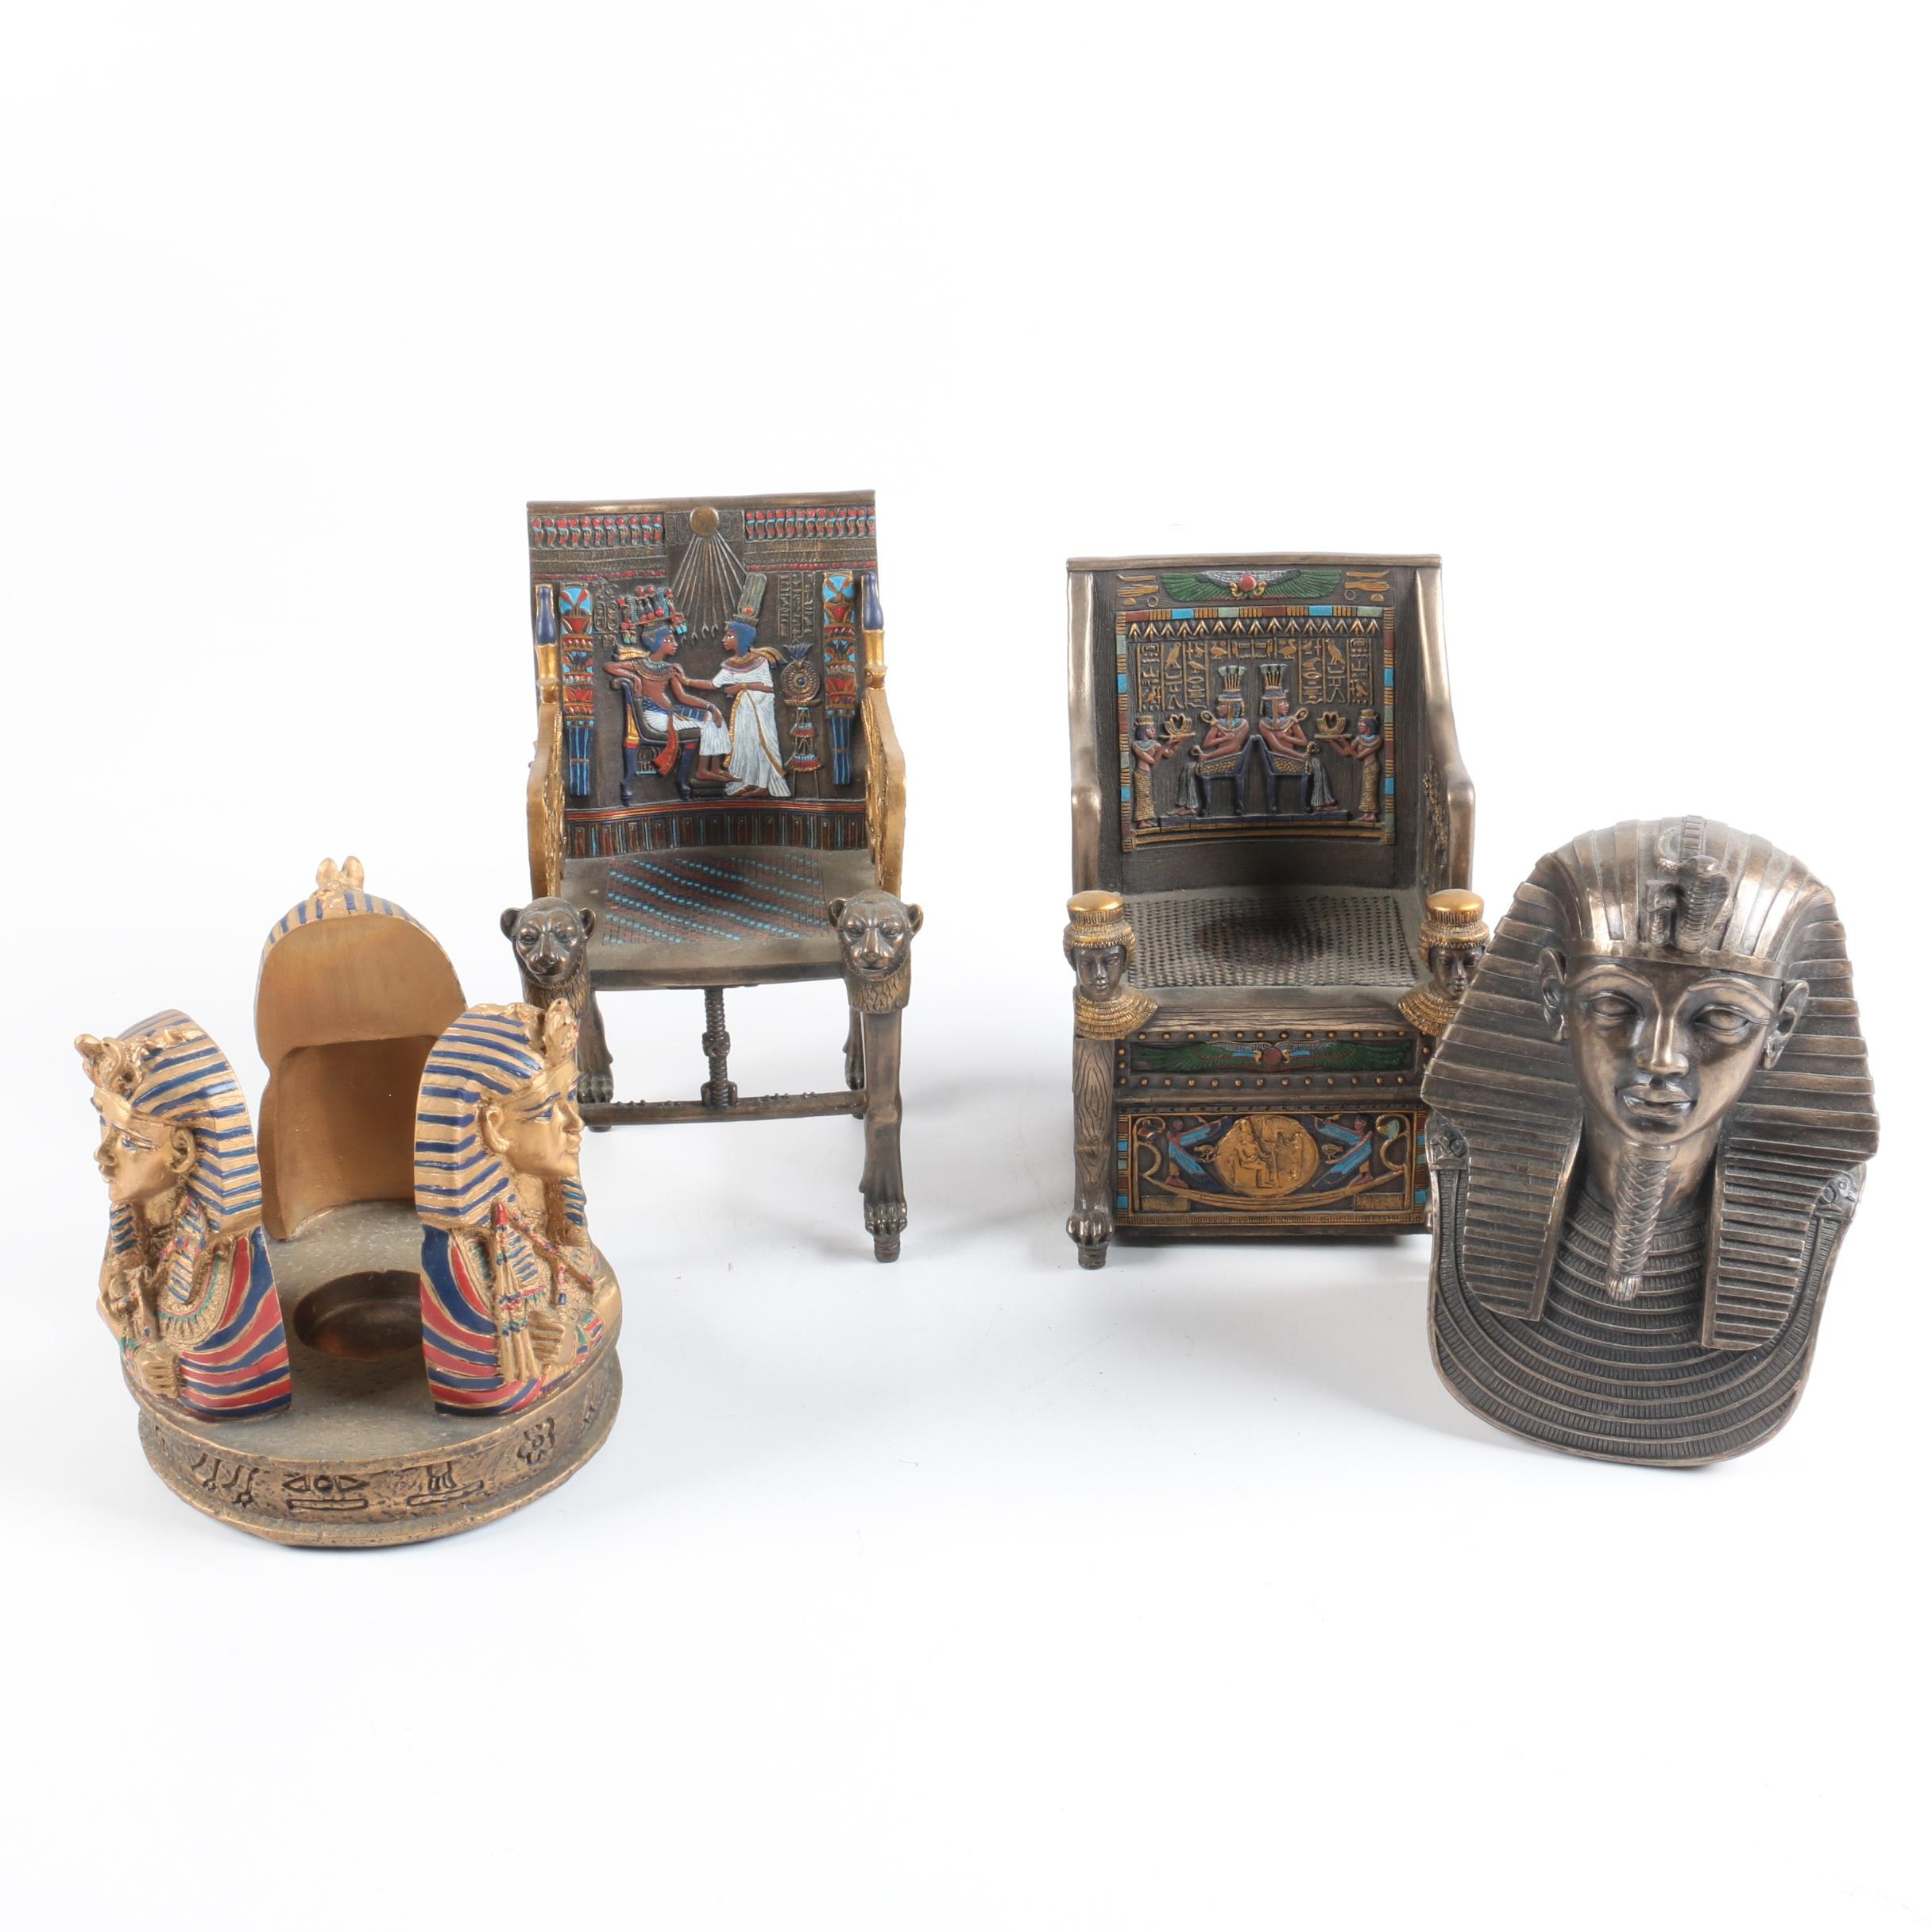 Egyptian Themed Candle Holder and Decor